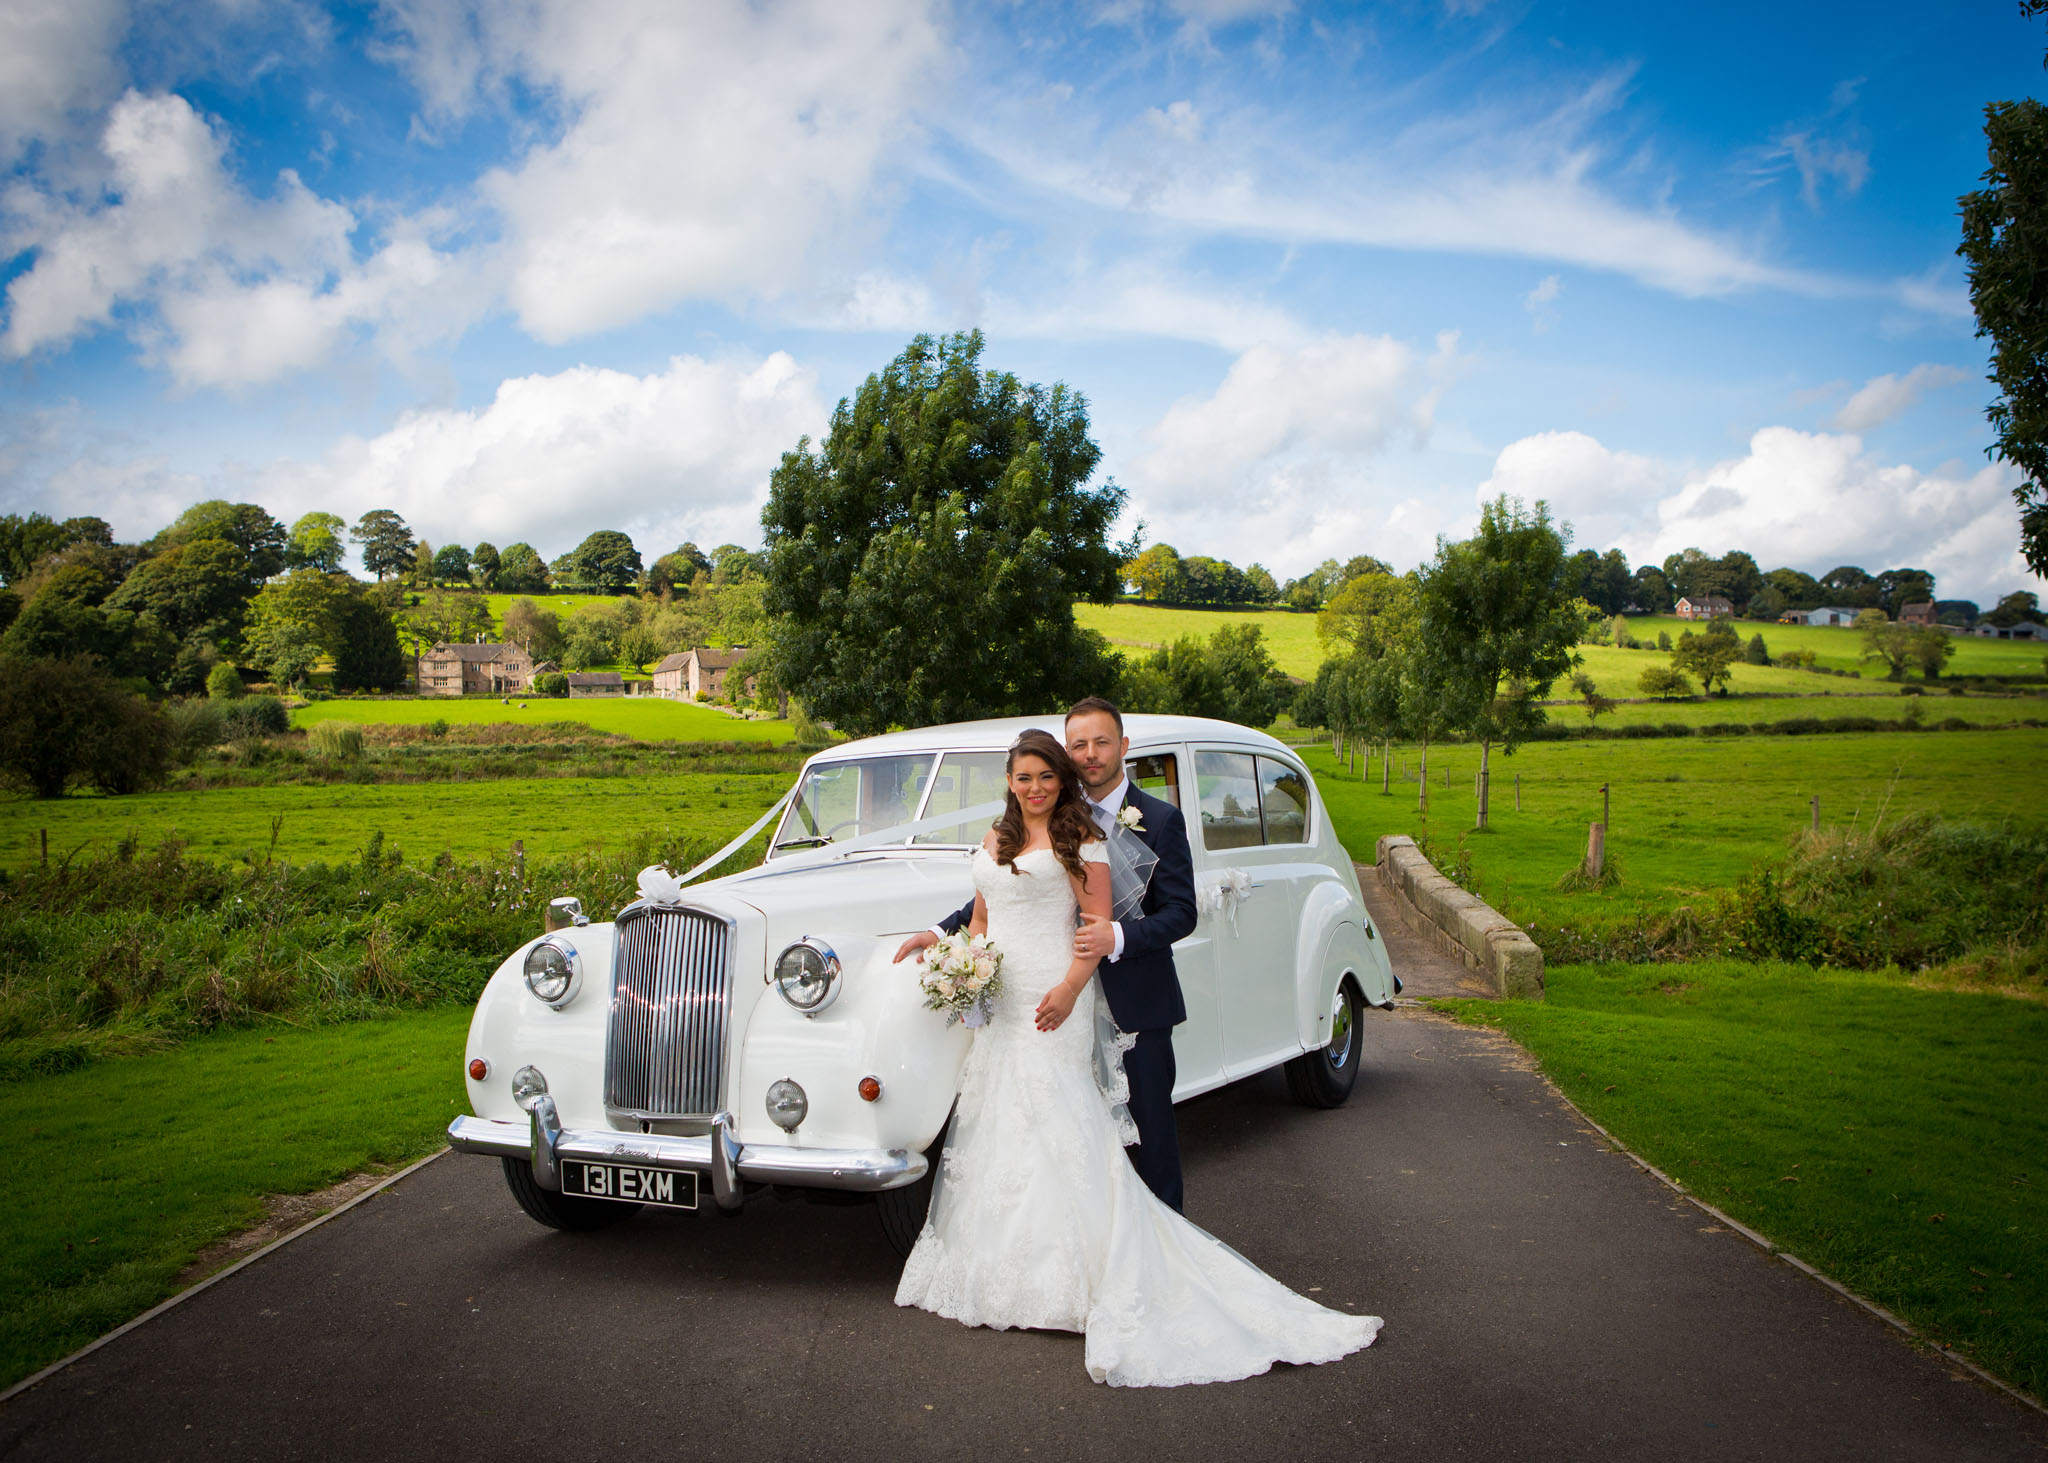 The Ashes Barns wedding venue